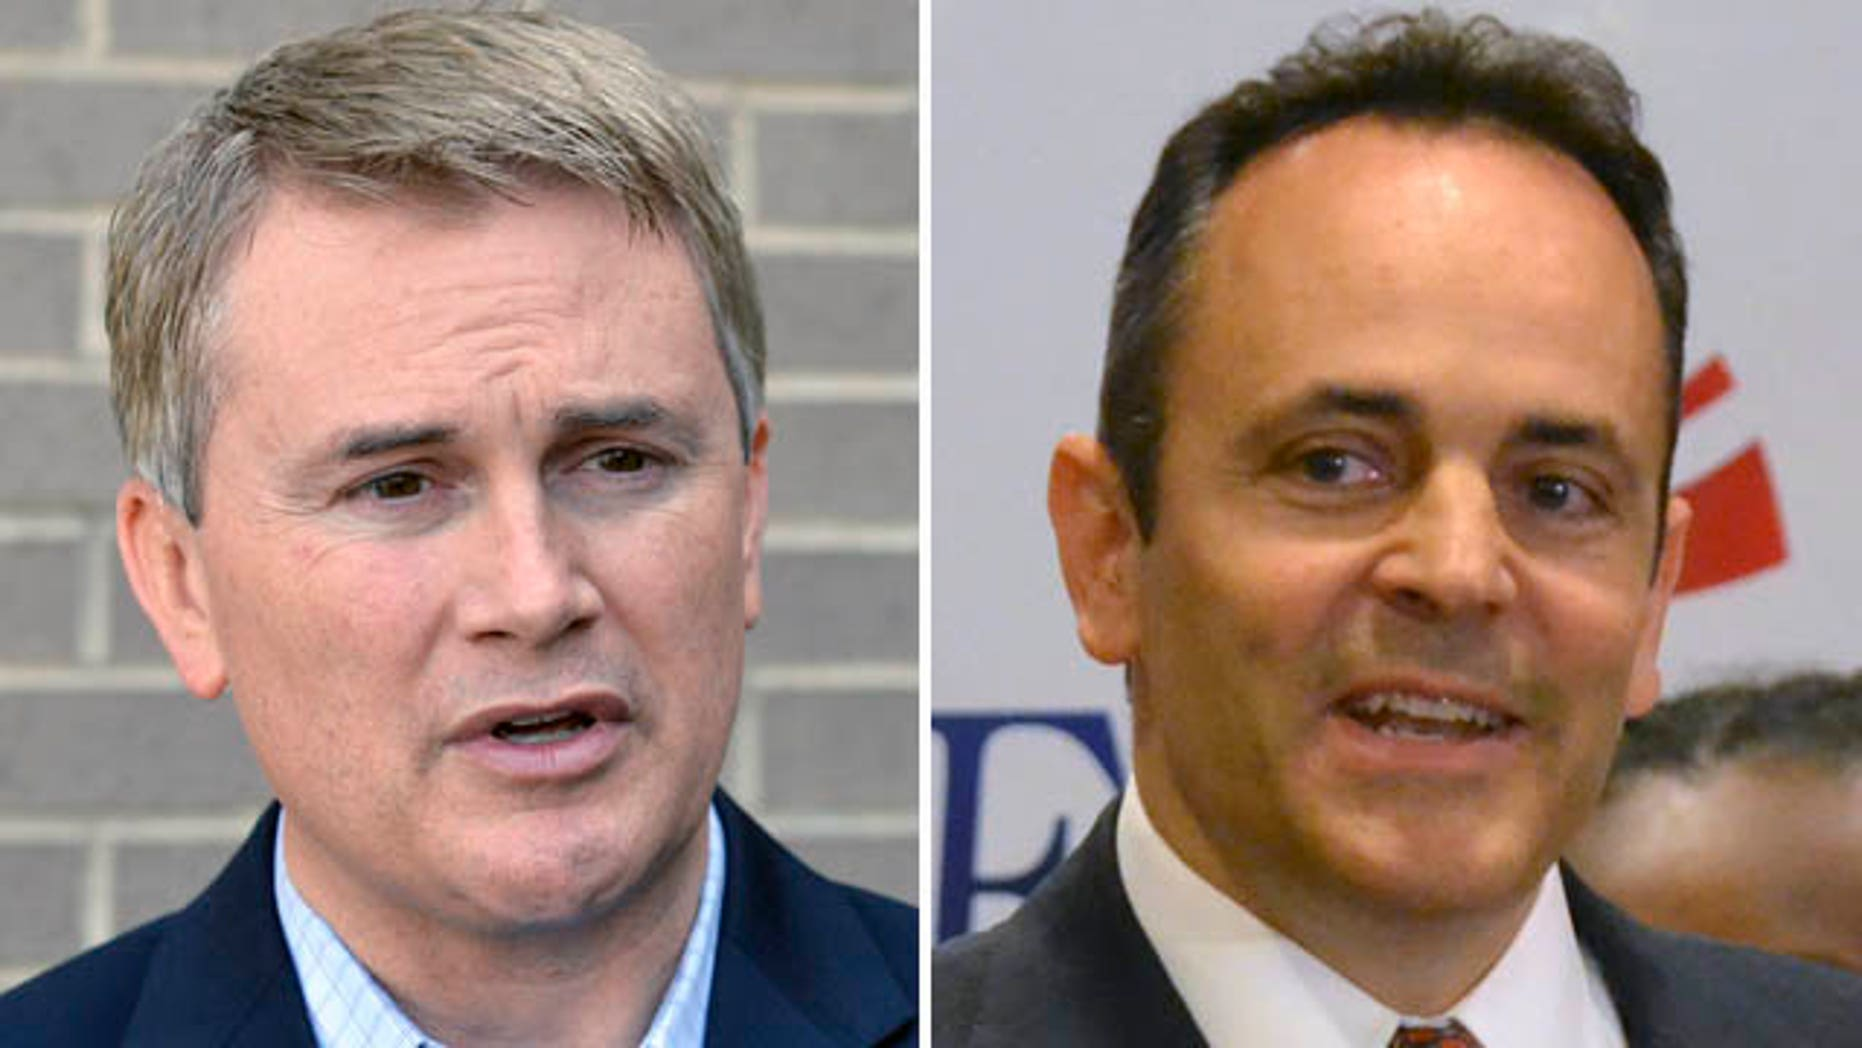 May 19, 2015: These photos show Kentucky Republican gubernatorial candidate James Comer, left, and Matt Bevin, who are locked in a tight race to decide who will represent the Republican party in November's election against Democratic nominee Jack Conway.(AP Photo/Timothy D. Easley)